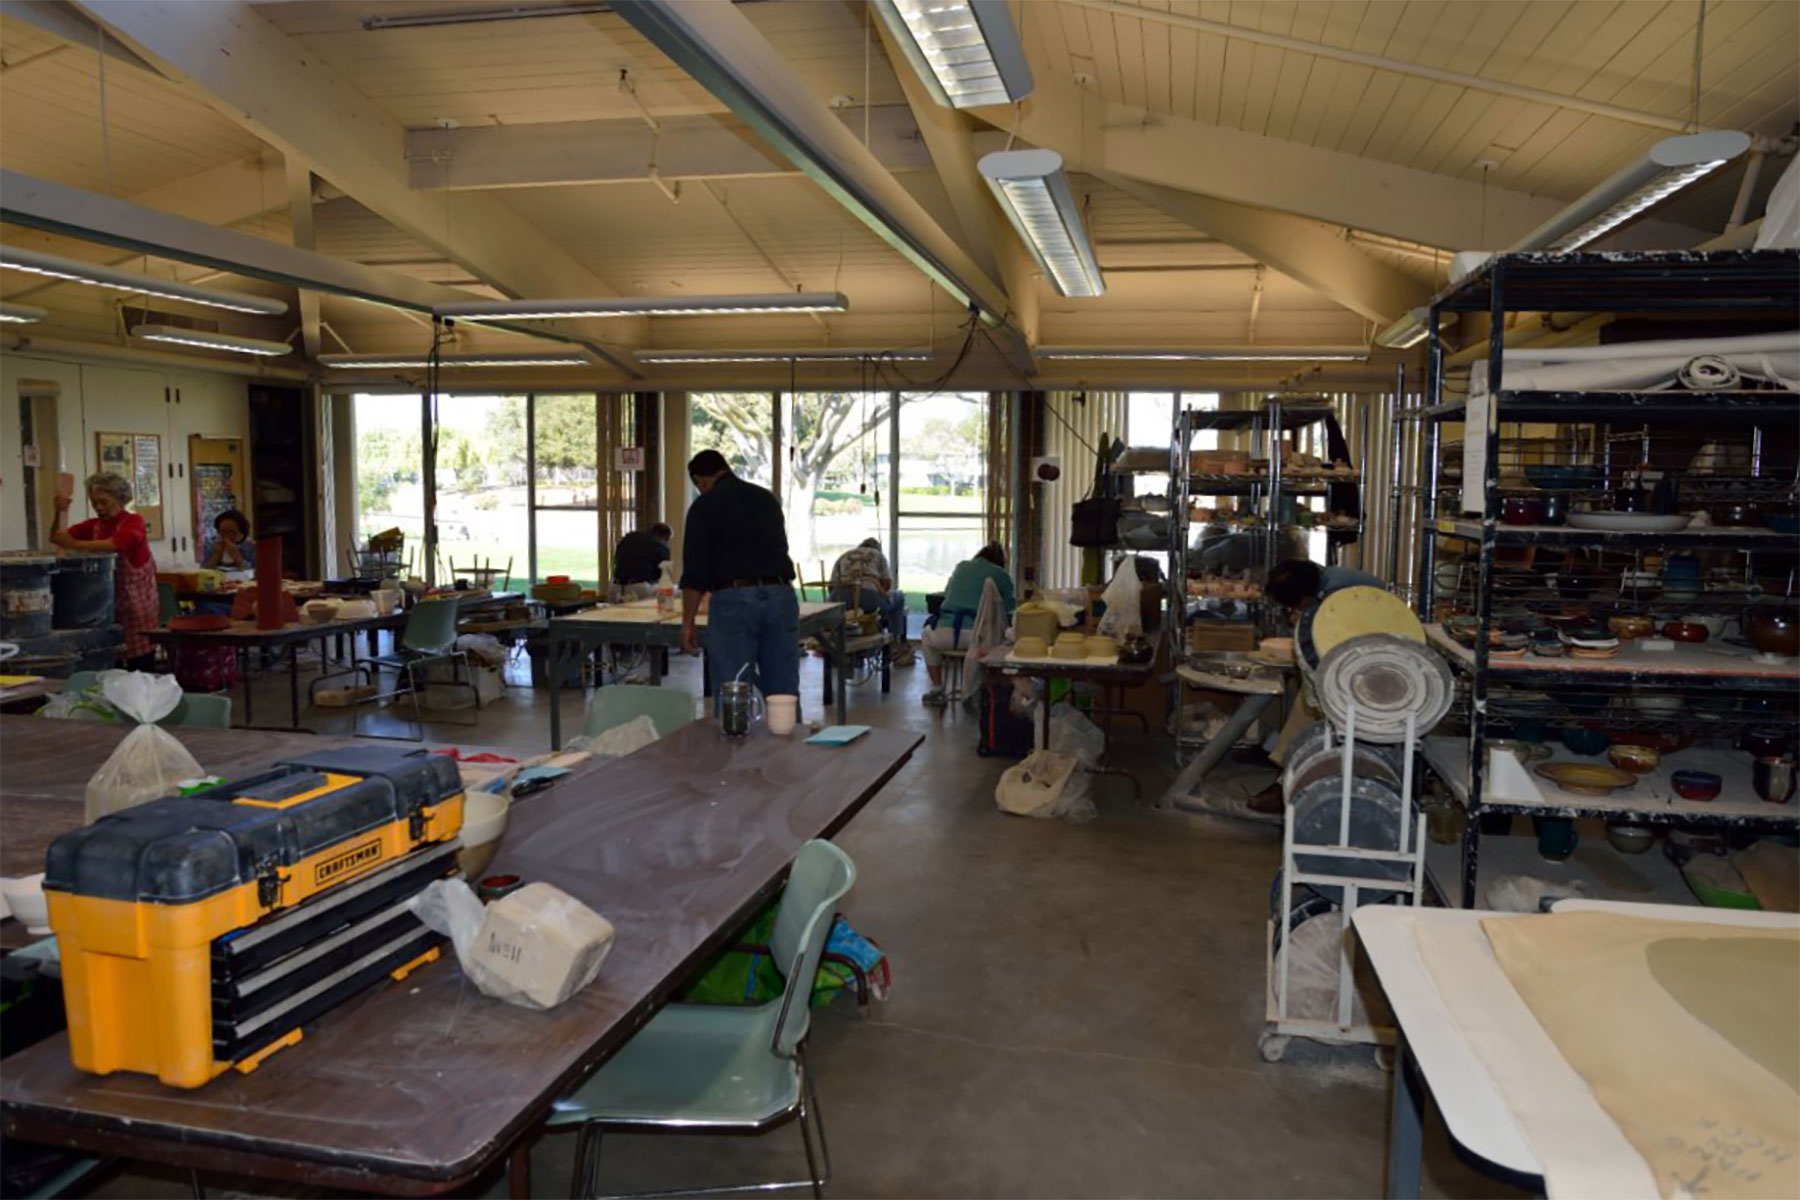 Large slab roller and work tables for hand-building.